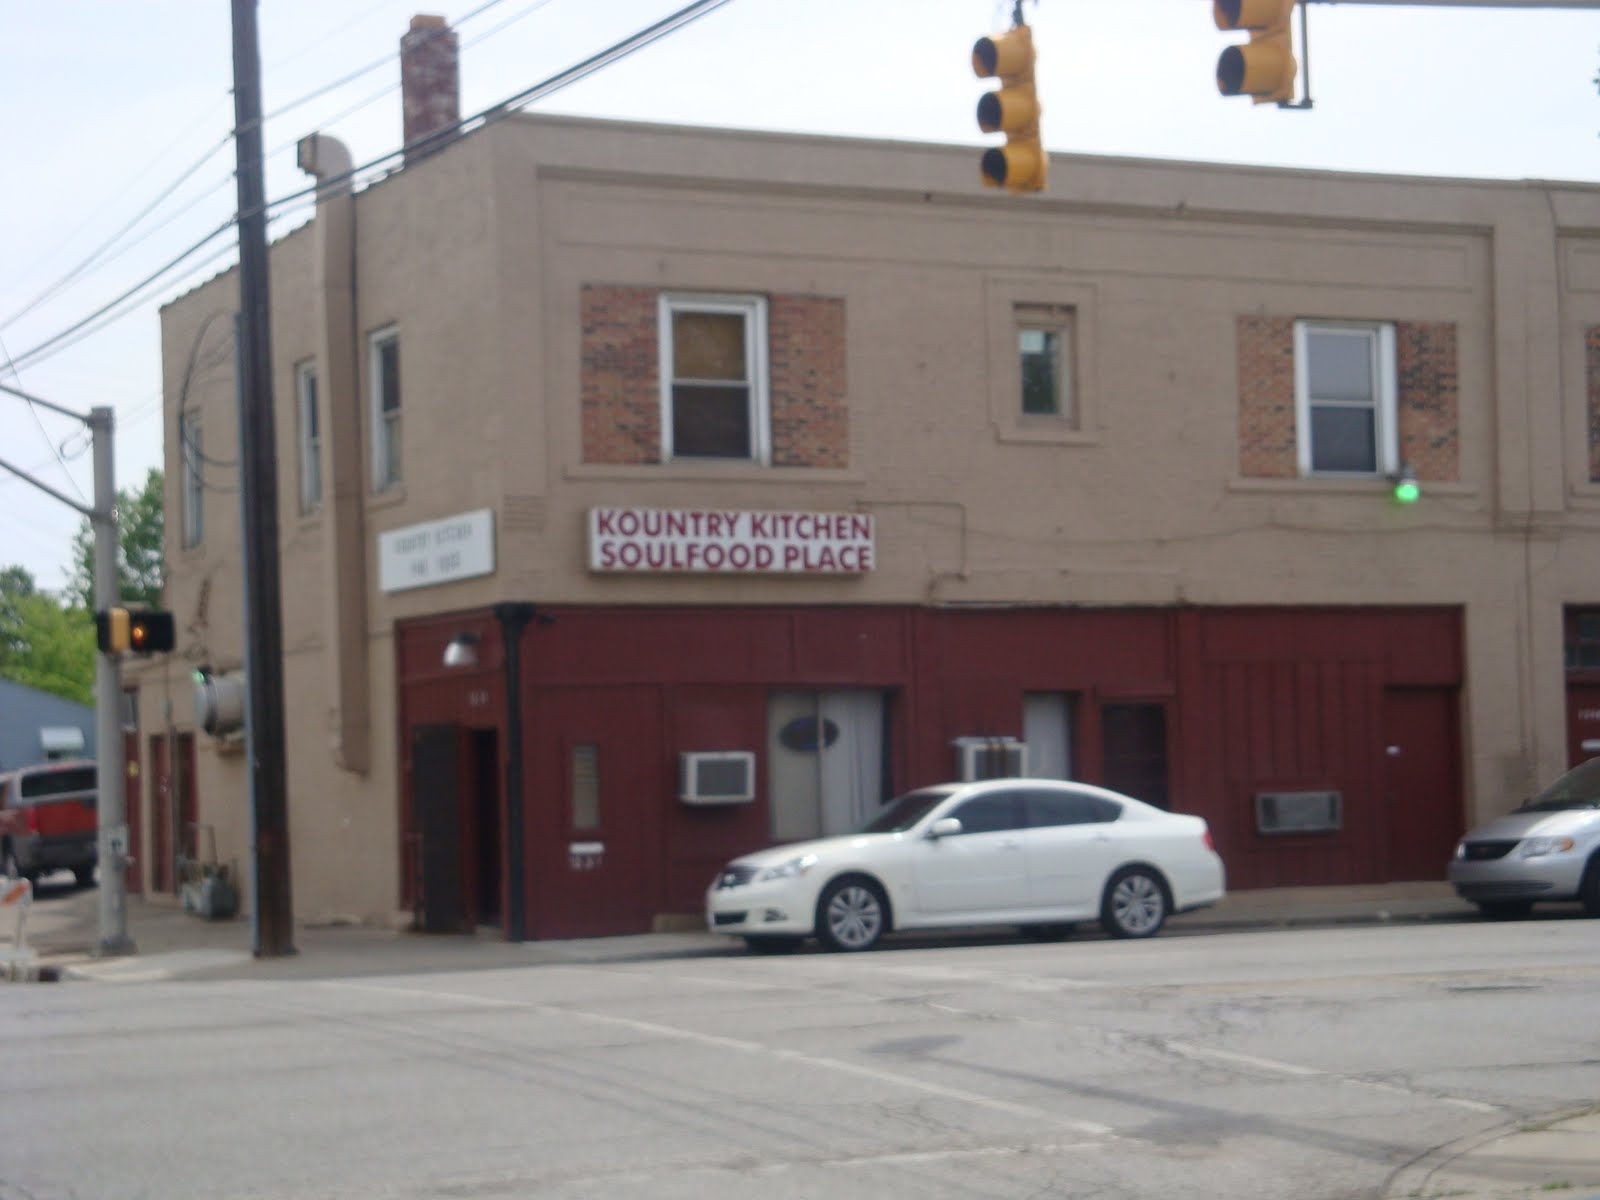 Kountry Kitchen Soul Food Place Indianapolis In